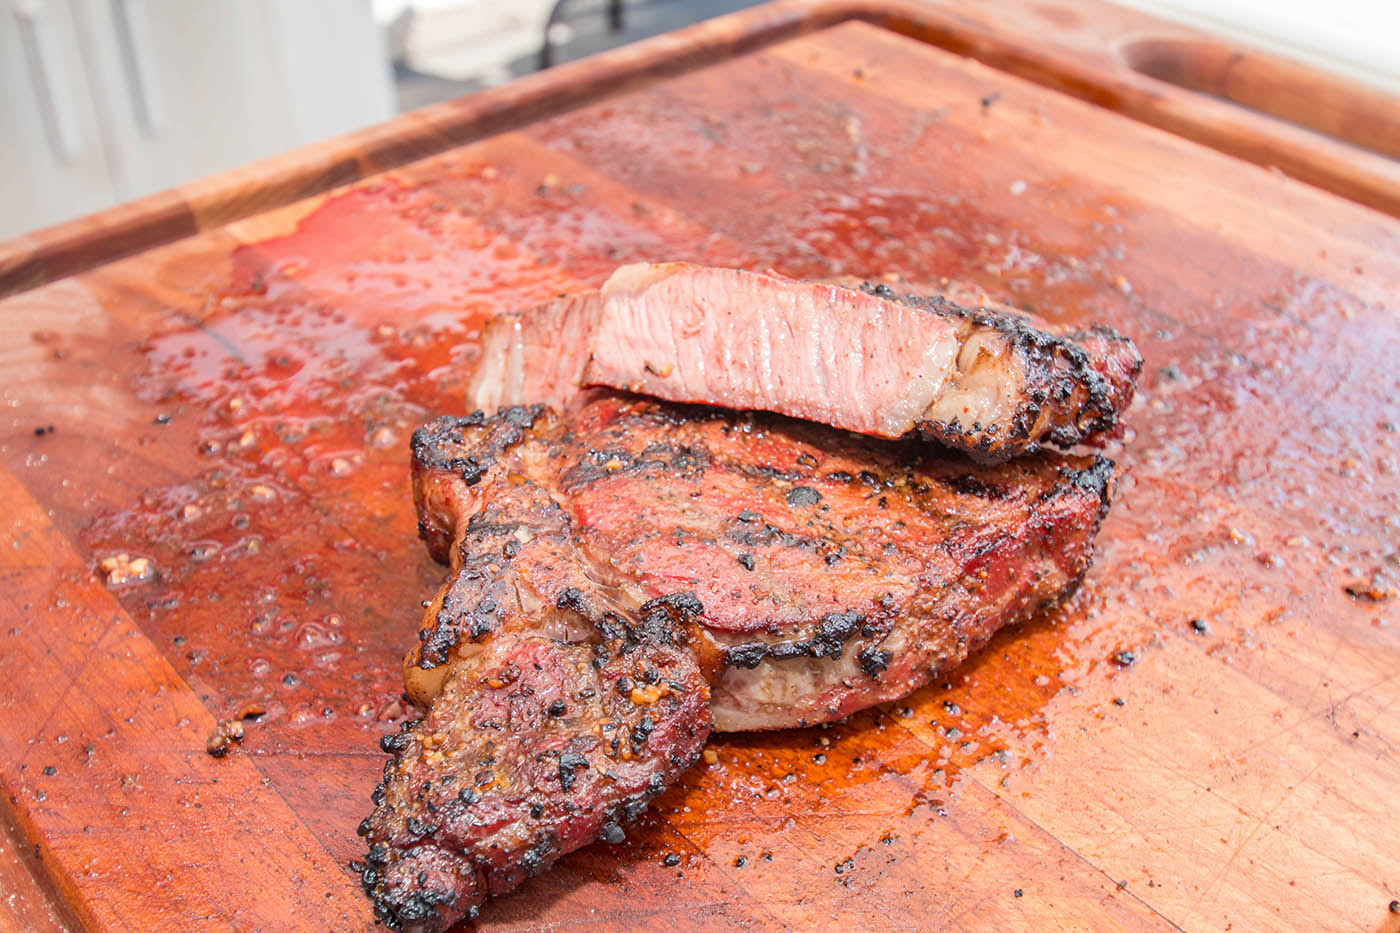 Chef Phillip Dell's Basic Grilled Steak - Back to Basics Grilling Class at BBQ Concepts of Las Vegas, Nevada